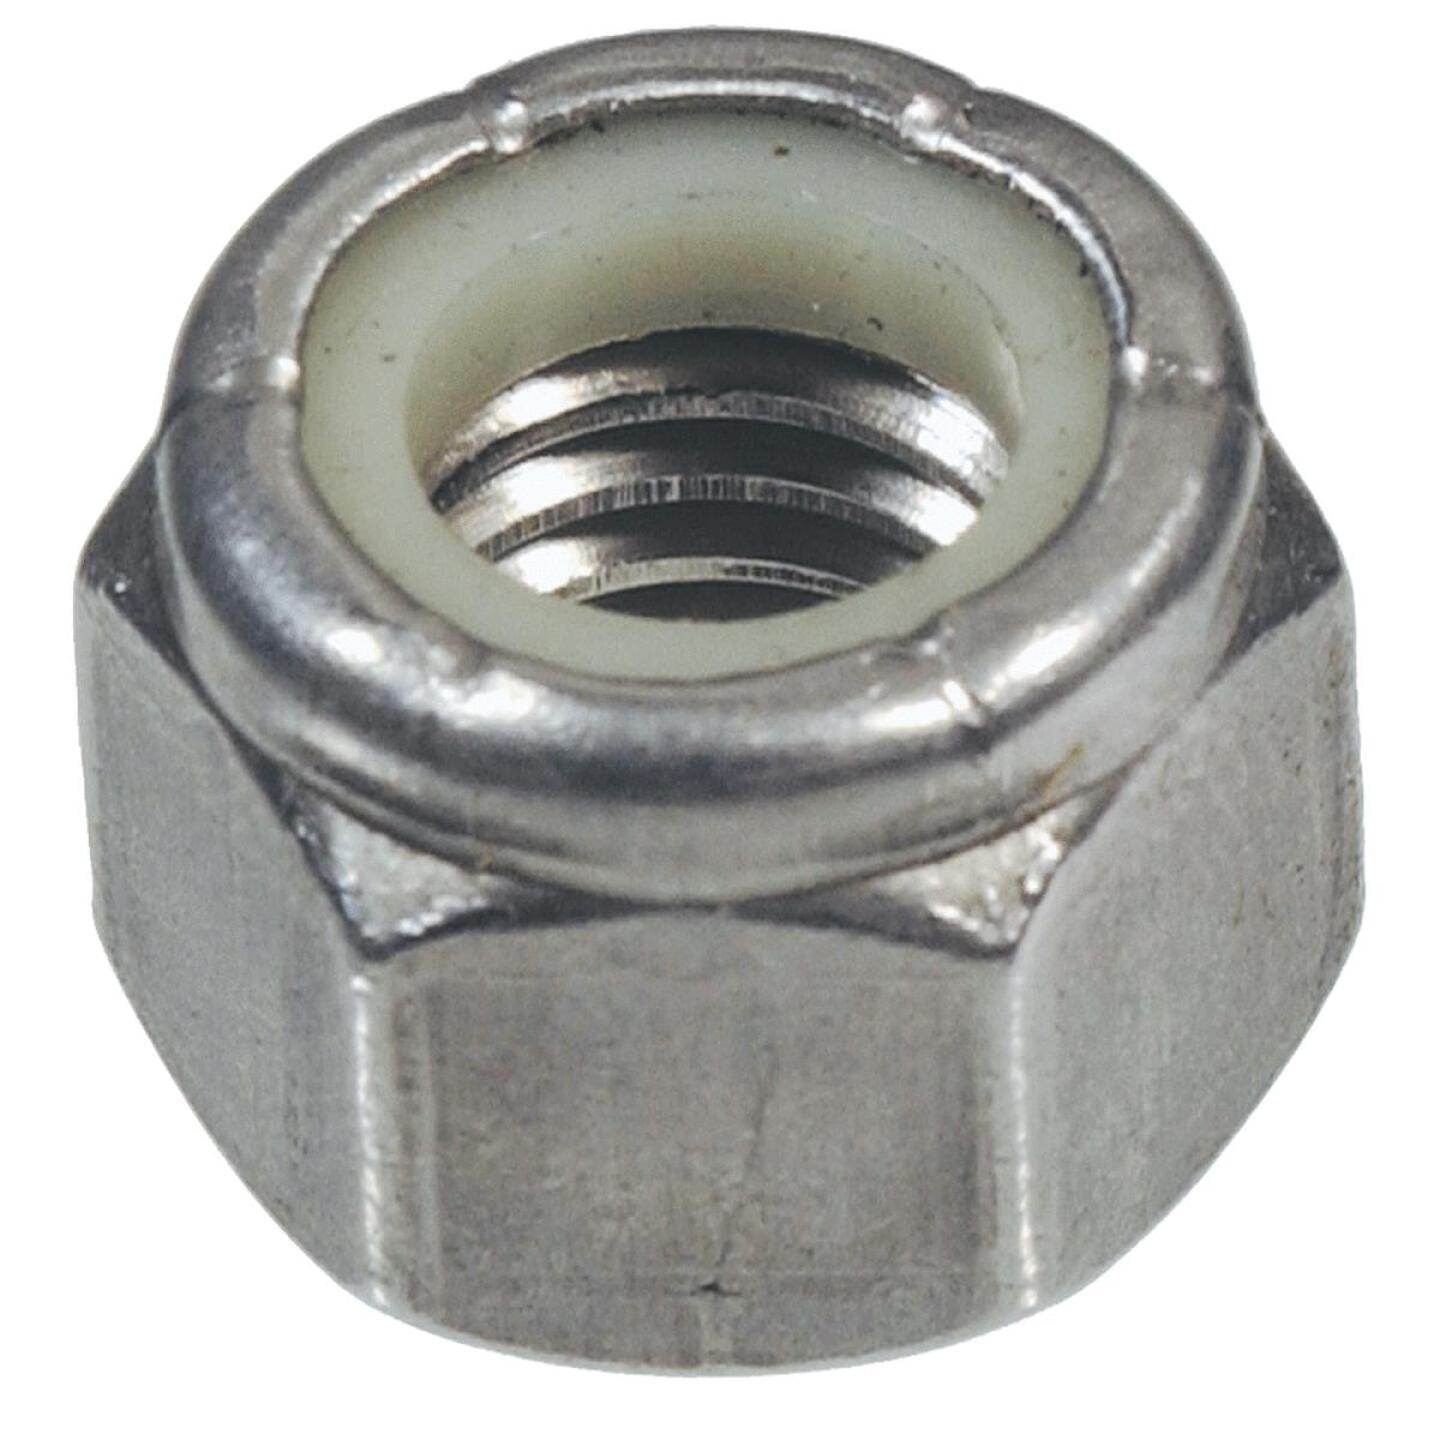 Hillman 3/8 In. 16 tpi Stainless Steel Course Thread Nylon Insert Lock Nut (50 Ct.) Image 1